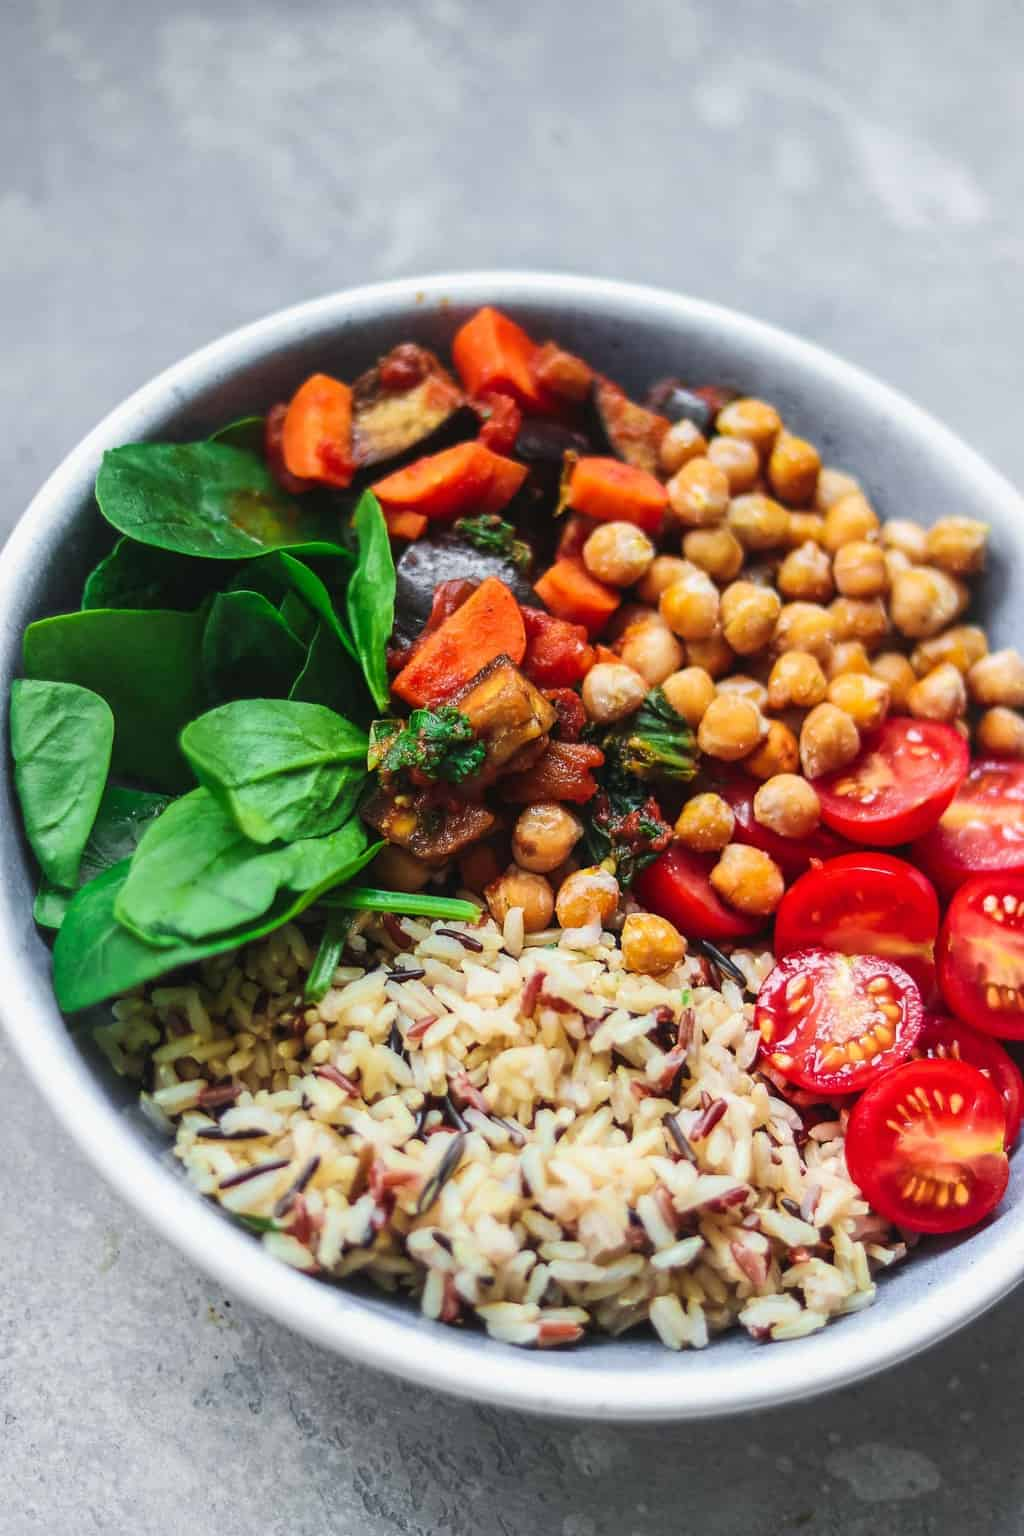 Bowl with chickpeas rice and vegetables